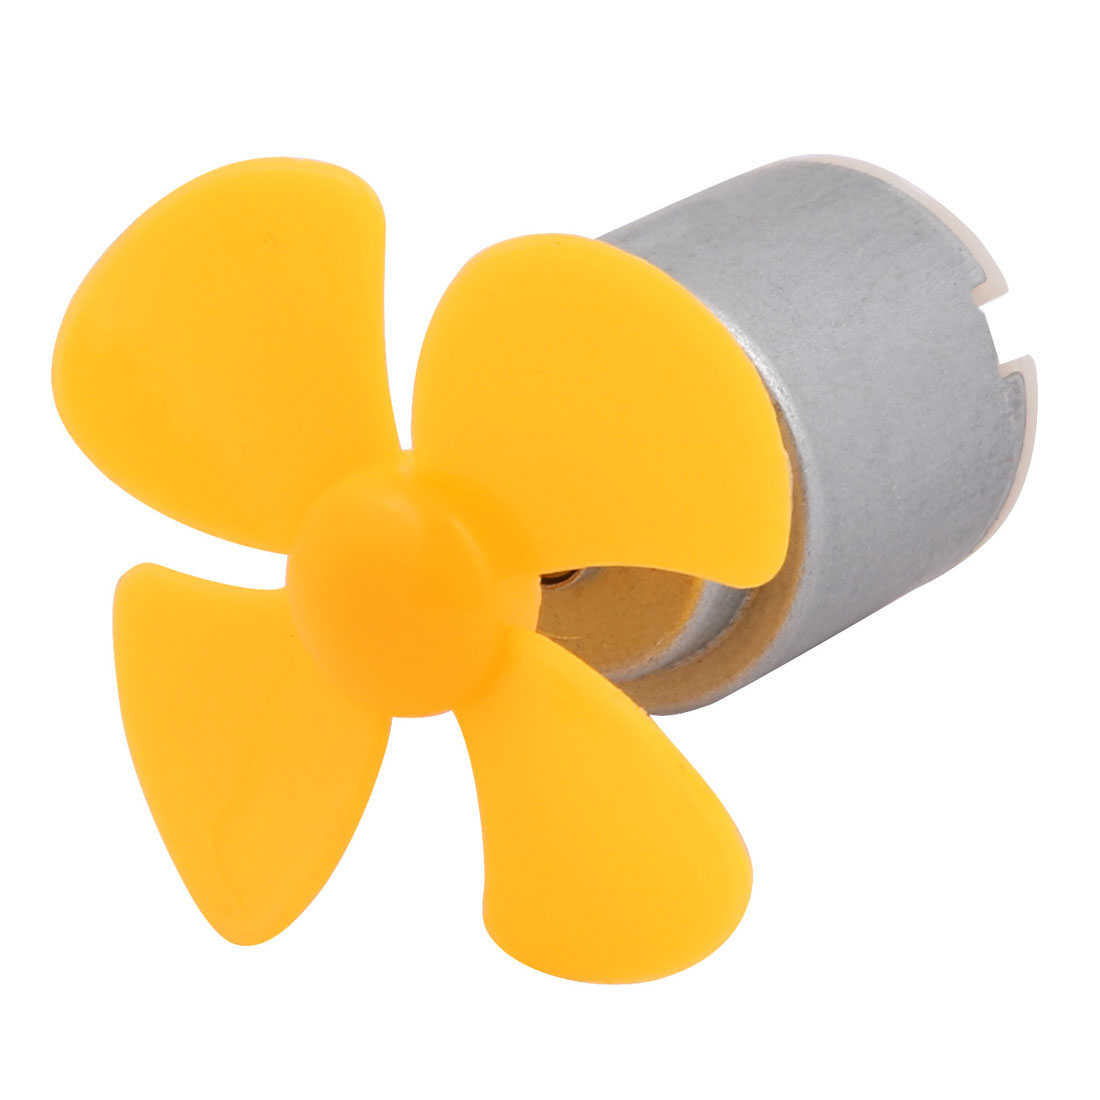 DC 3V 13000RPM High Torque Motor 4 Vanes 40mm Dia Plastic DIY Propeller Yellow